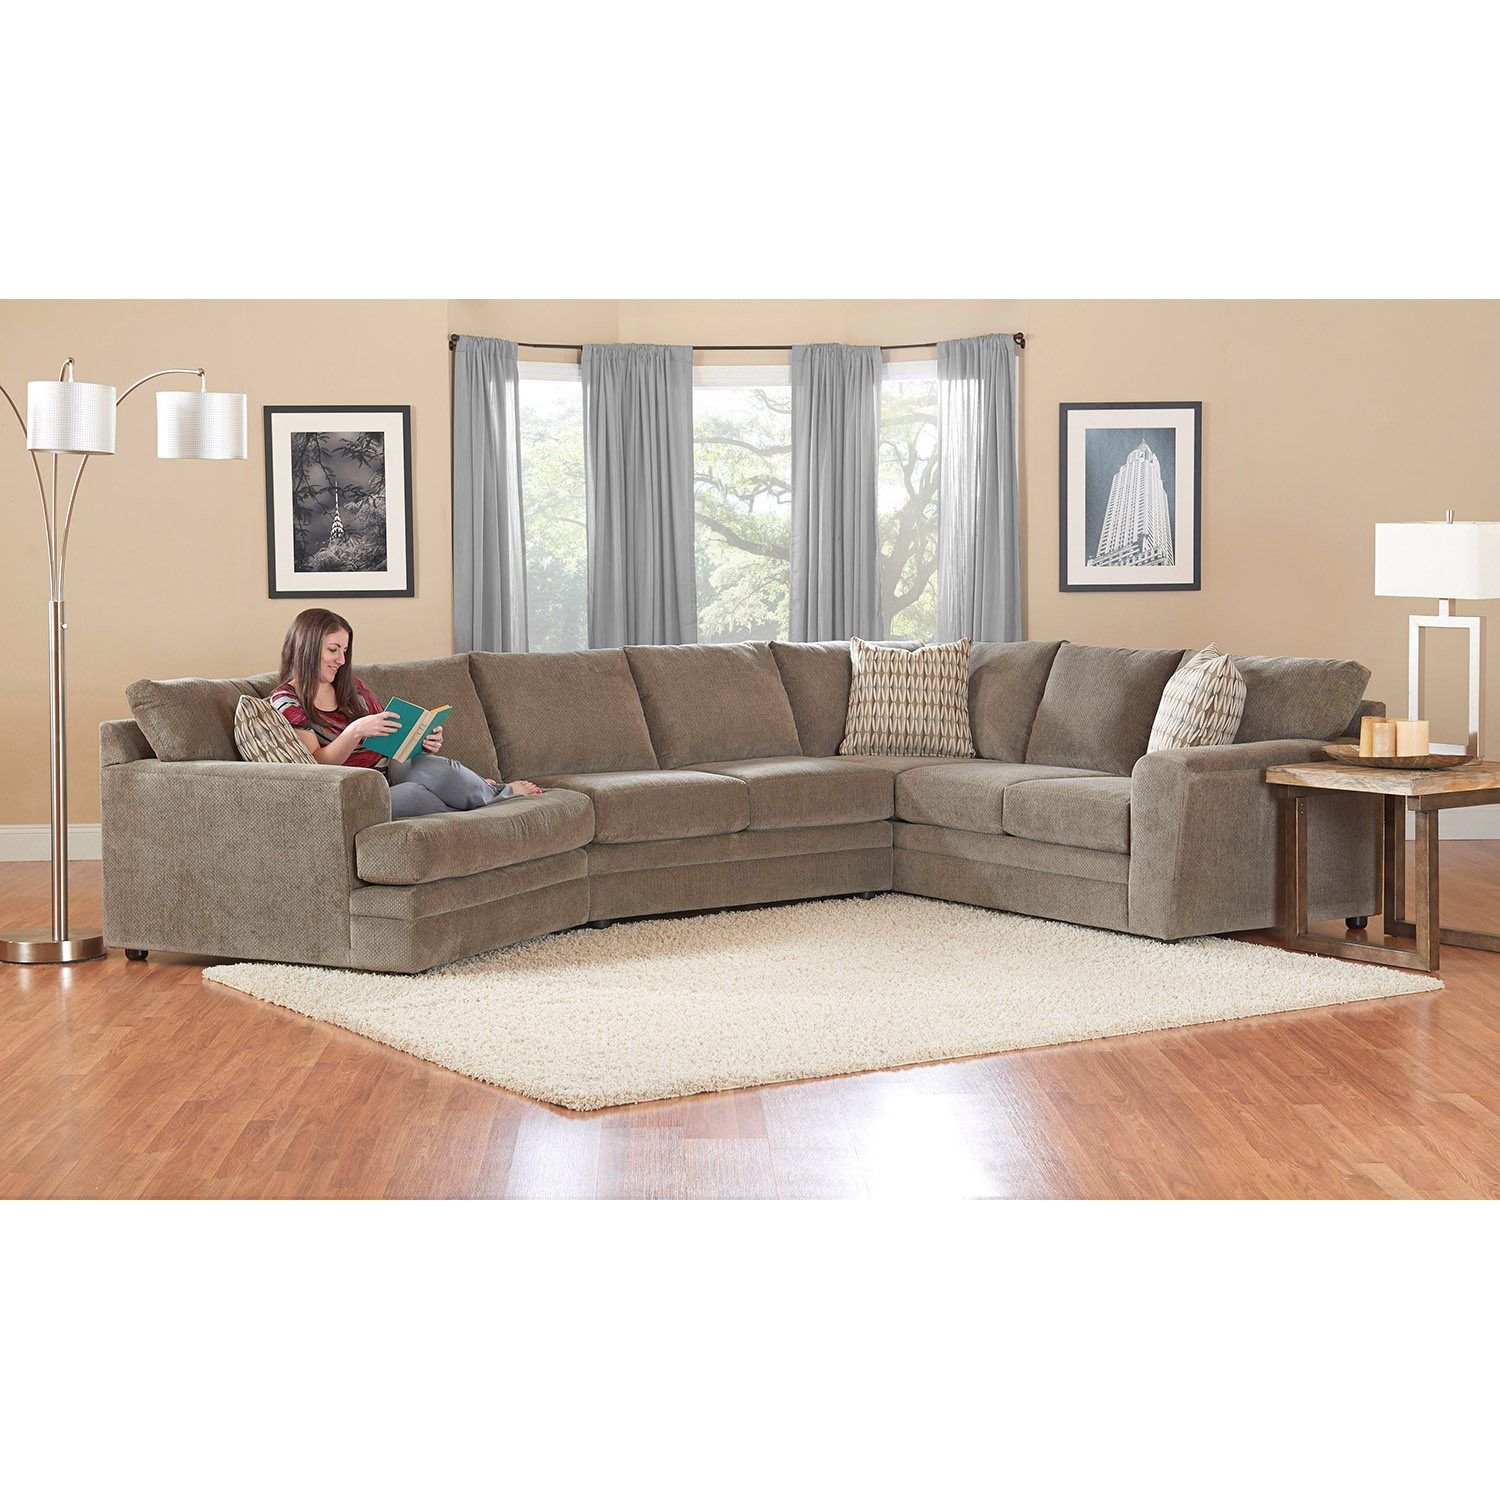 1699 00 Prestige Ashburn Sectional Sofa Dealepic